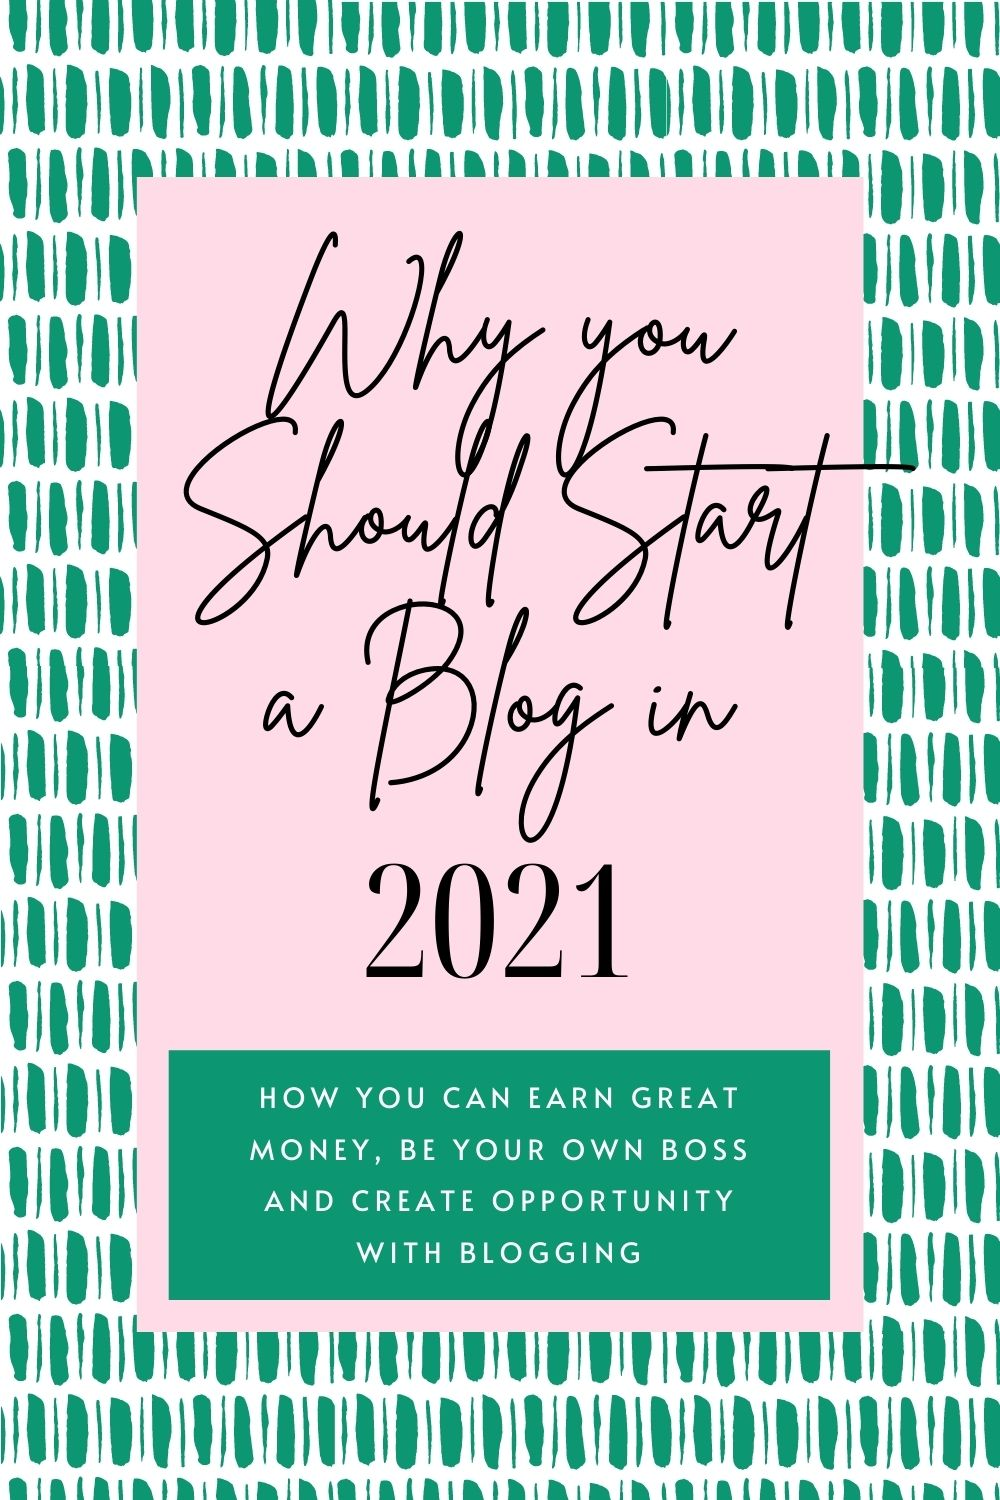 why you should start a blog in 2021 poster